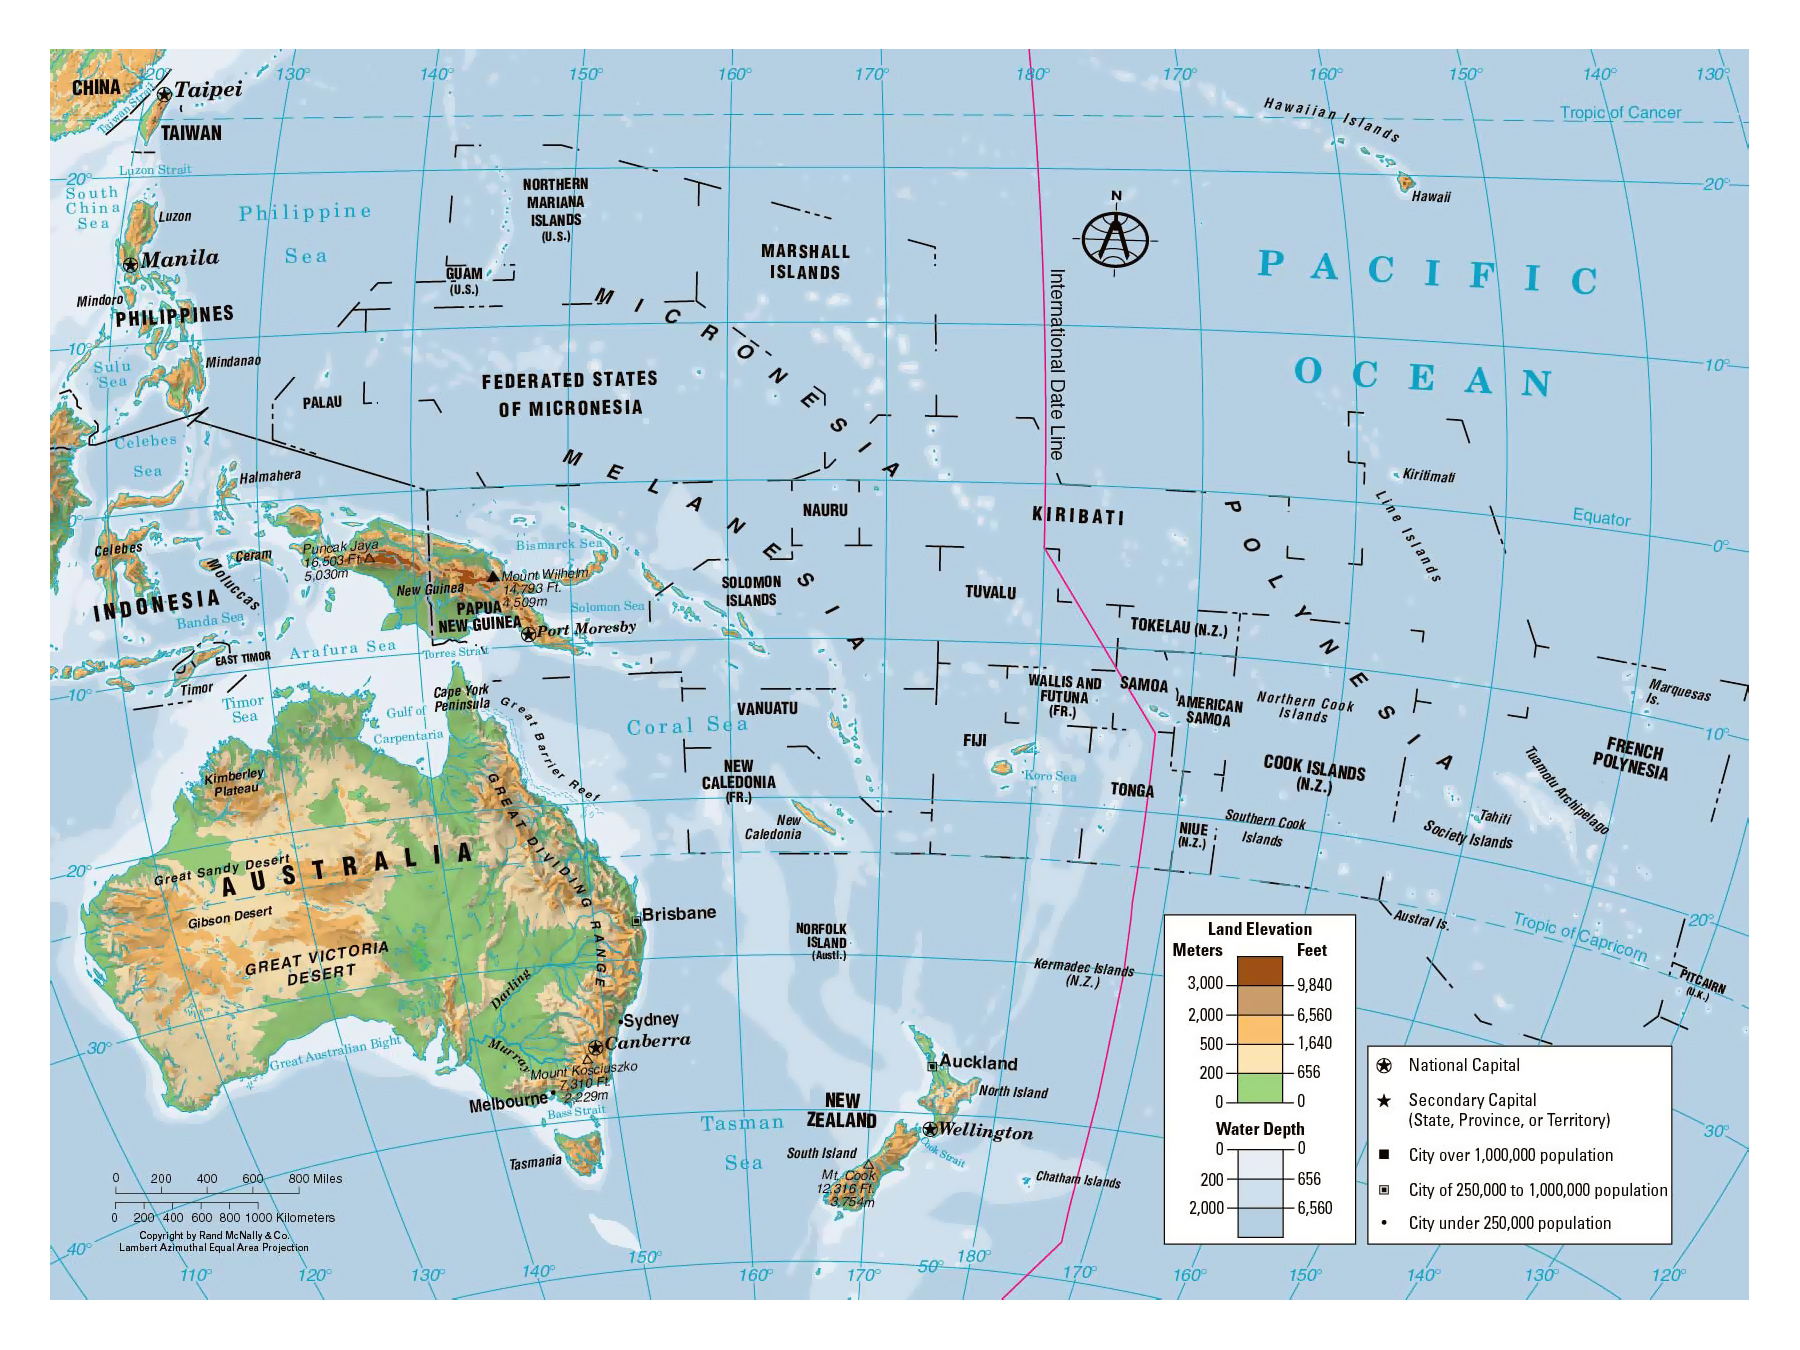 Image of: Maps Of Australia And Oceania And Oceanian Countries Political Maps Administrative And Road Maps Physical And Topographical Maps Of Australia And Oceania With Countries Maps Of The World